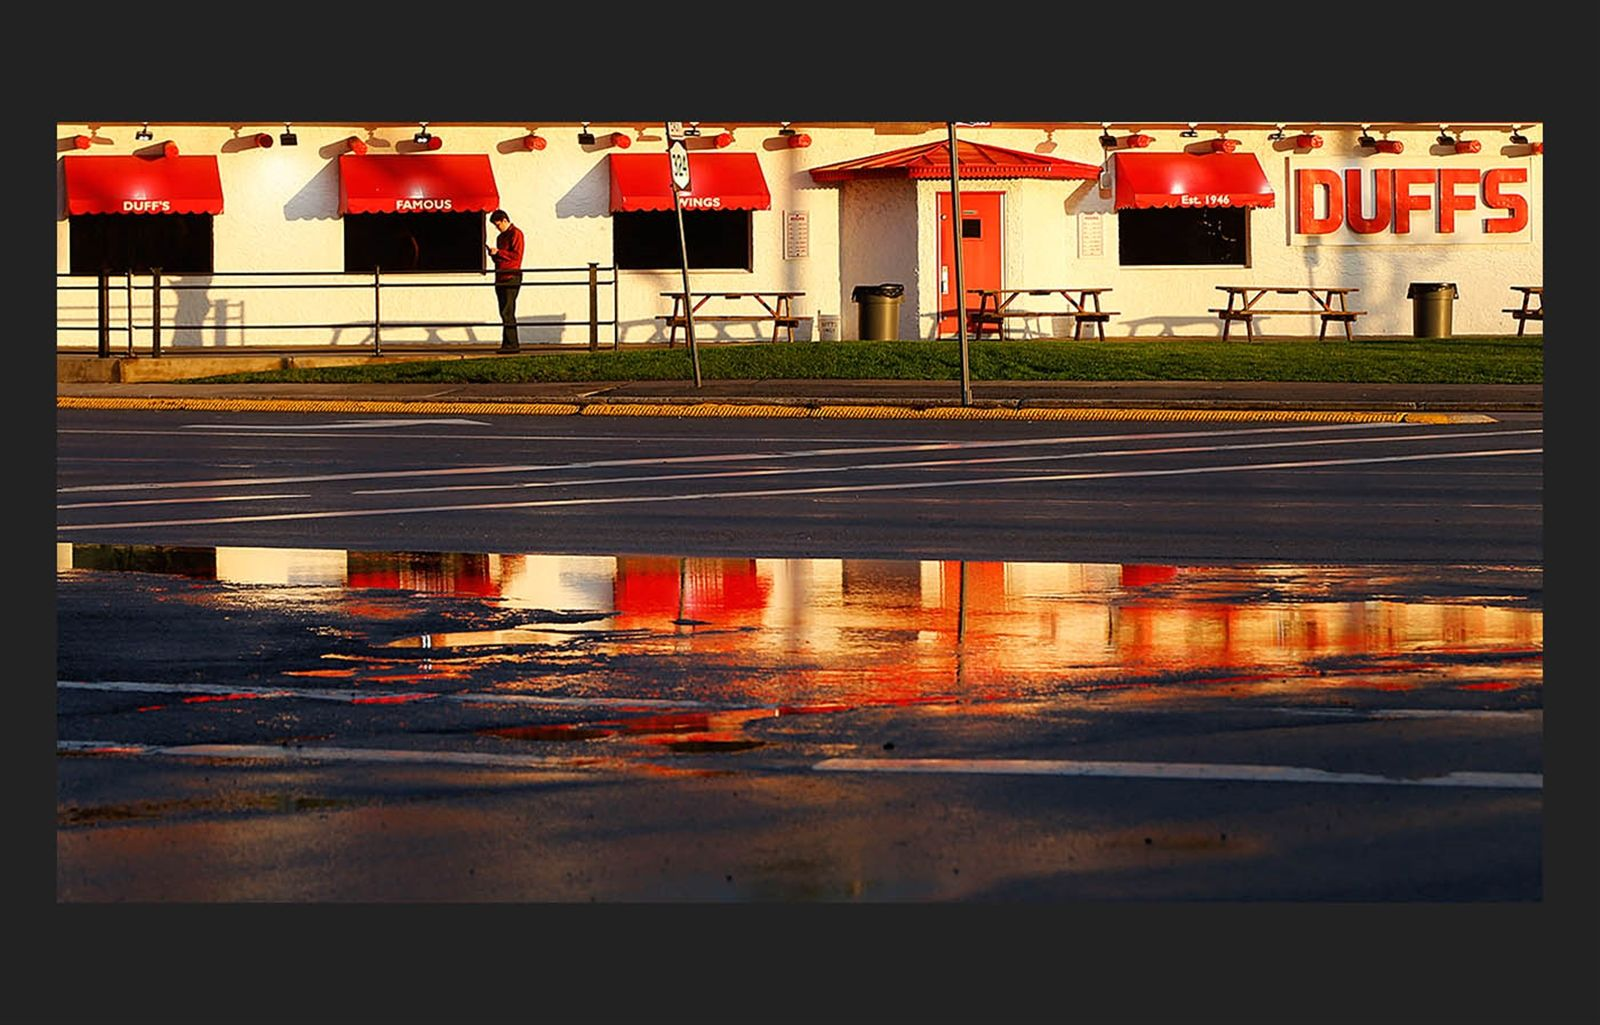 Day 121: May 1, 2017 - Calm after the storm: Duff's on Sheridan in Amherst reflects in a puddle left over from the storm.